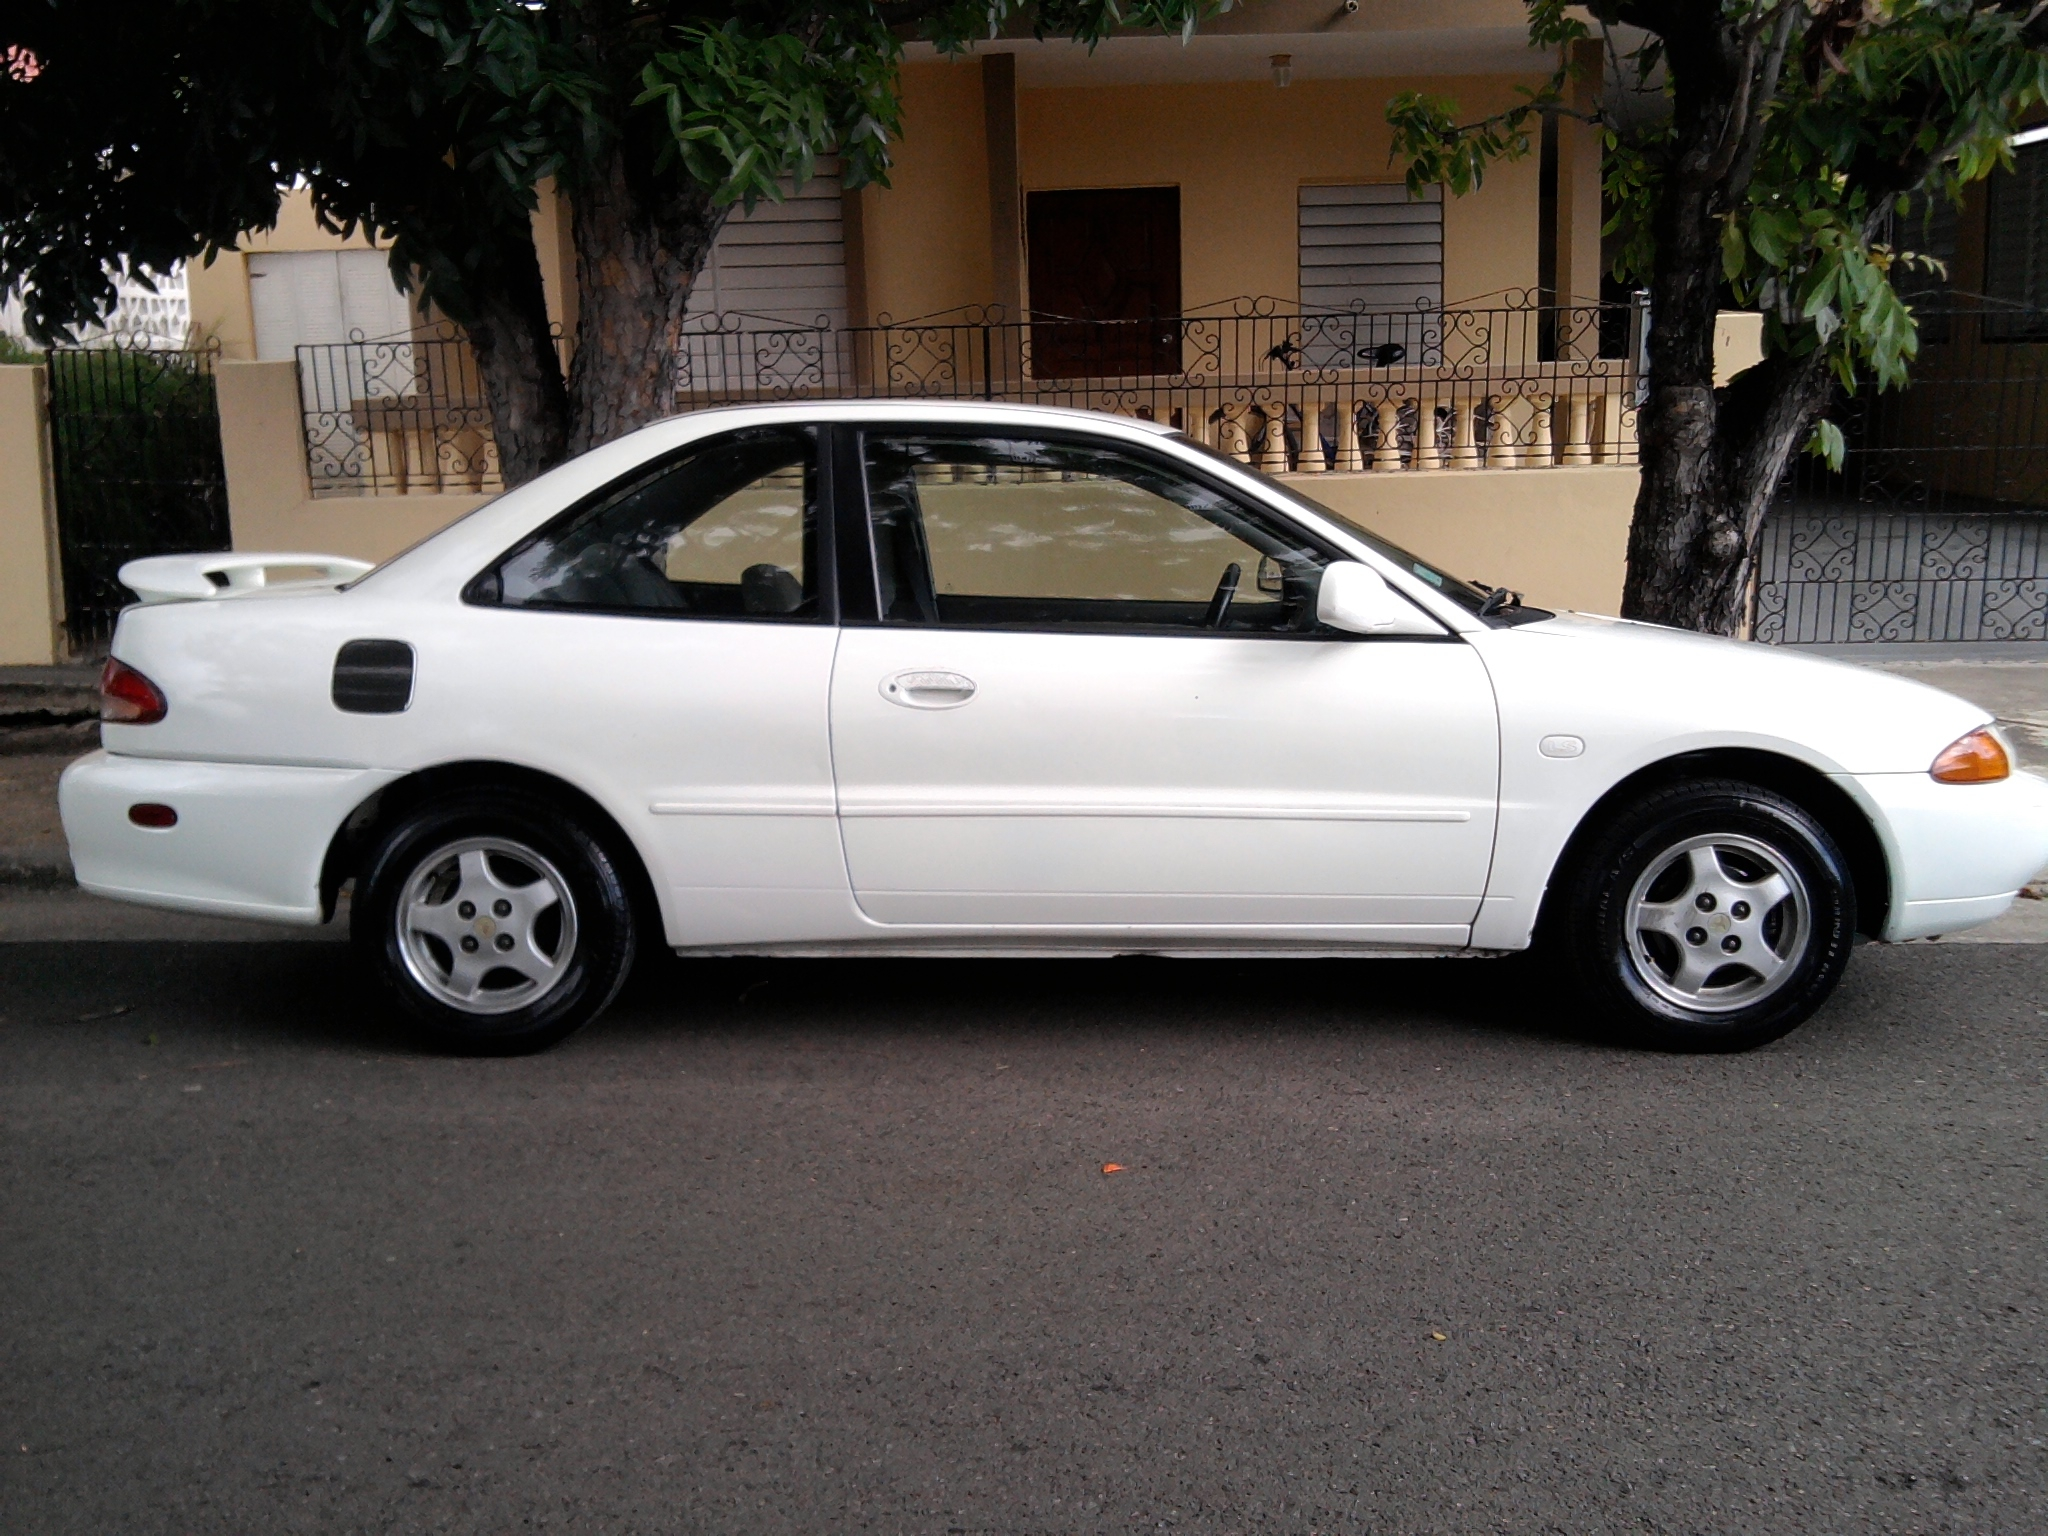 Dgxxx 1996 Mitsubishi Mirage Specs, Photos, Modification